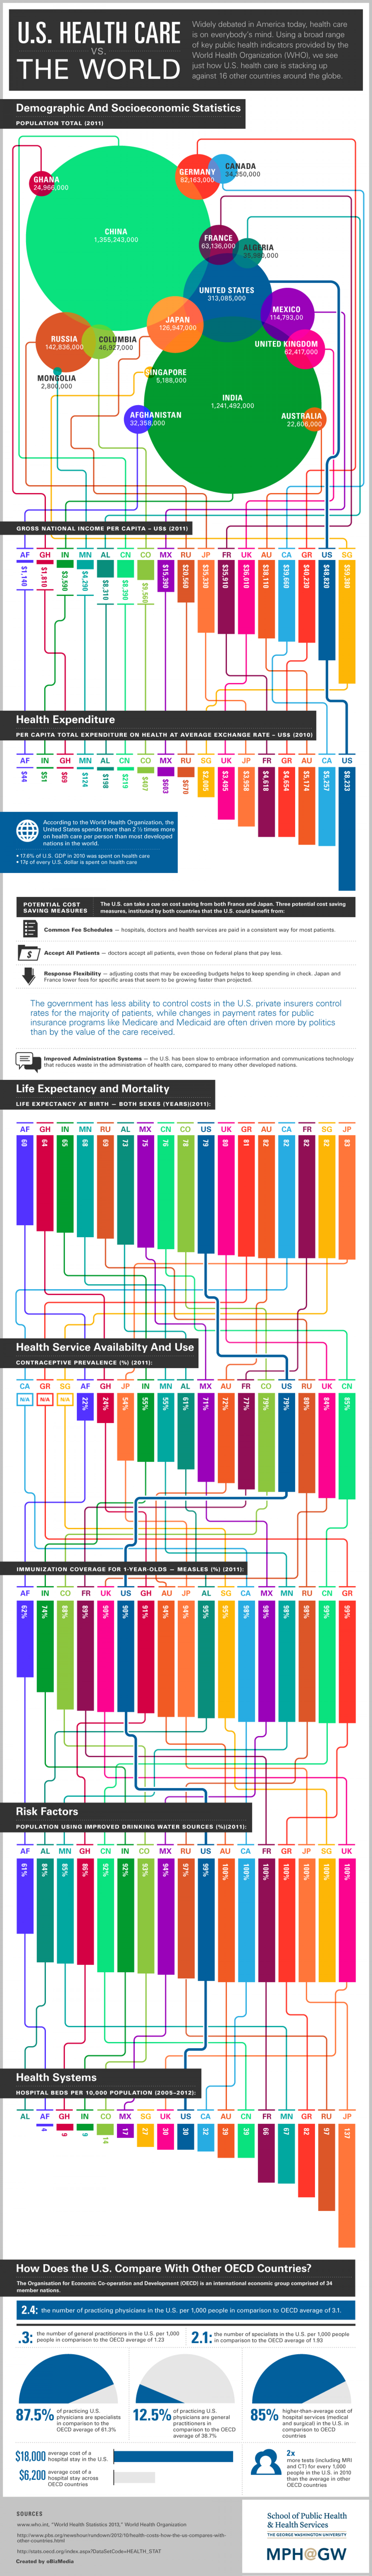 U.S. Health Care vs. The World Infographic